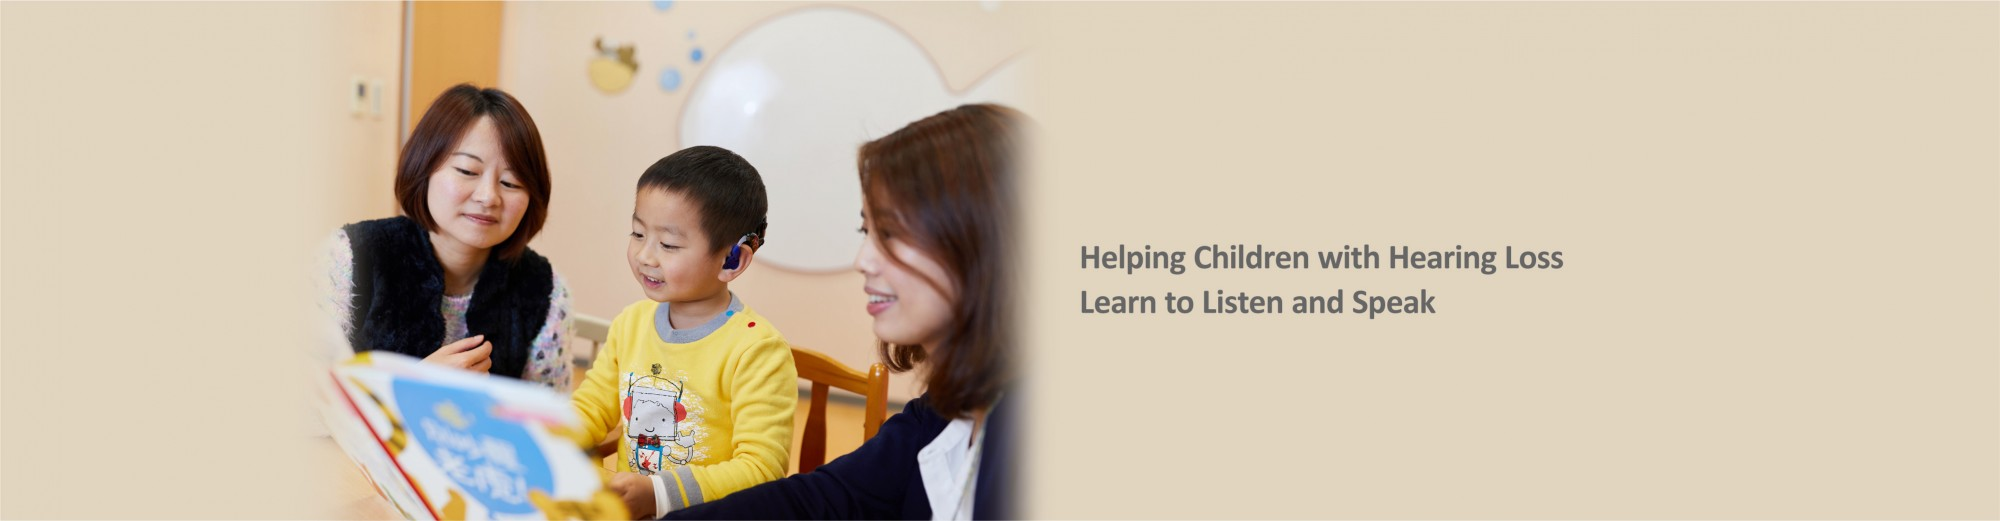 Helping children with hearing loss